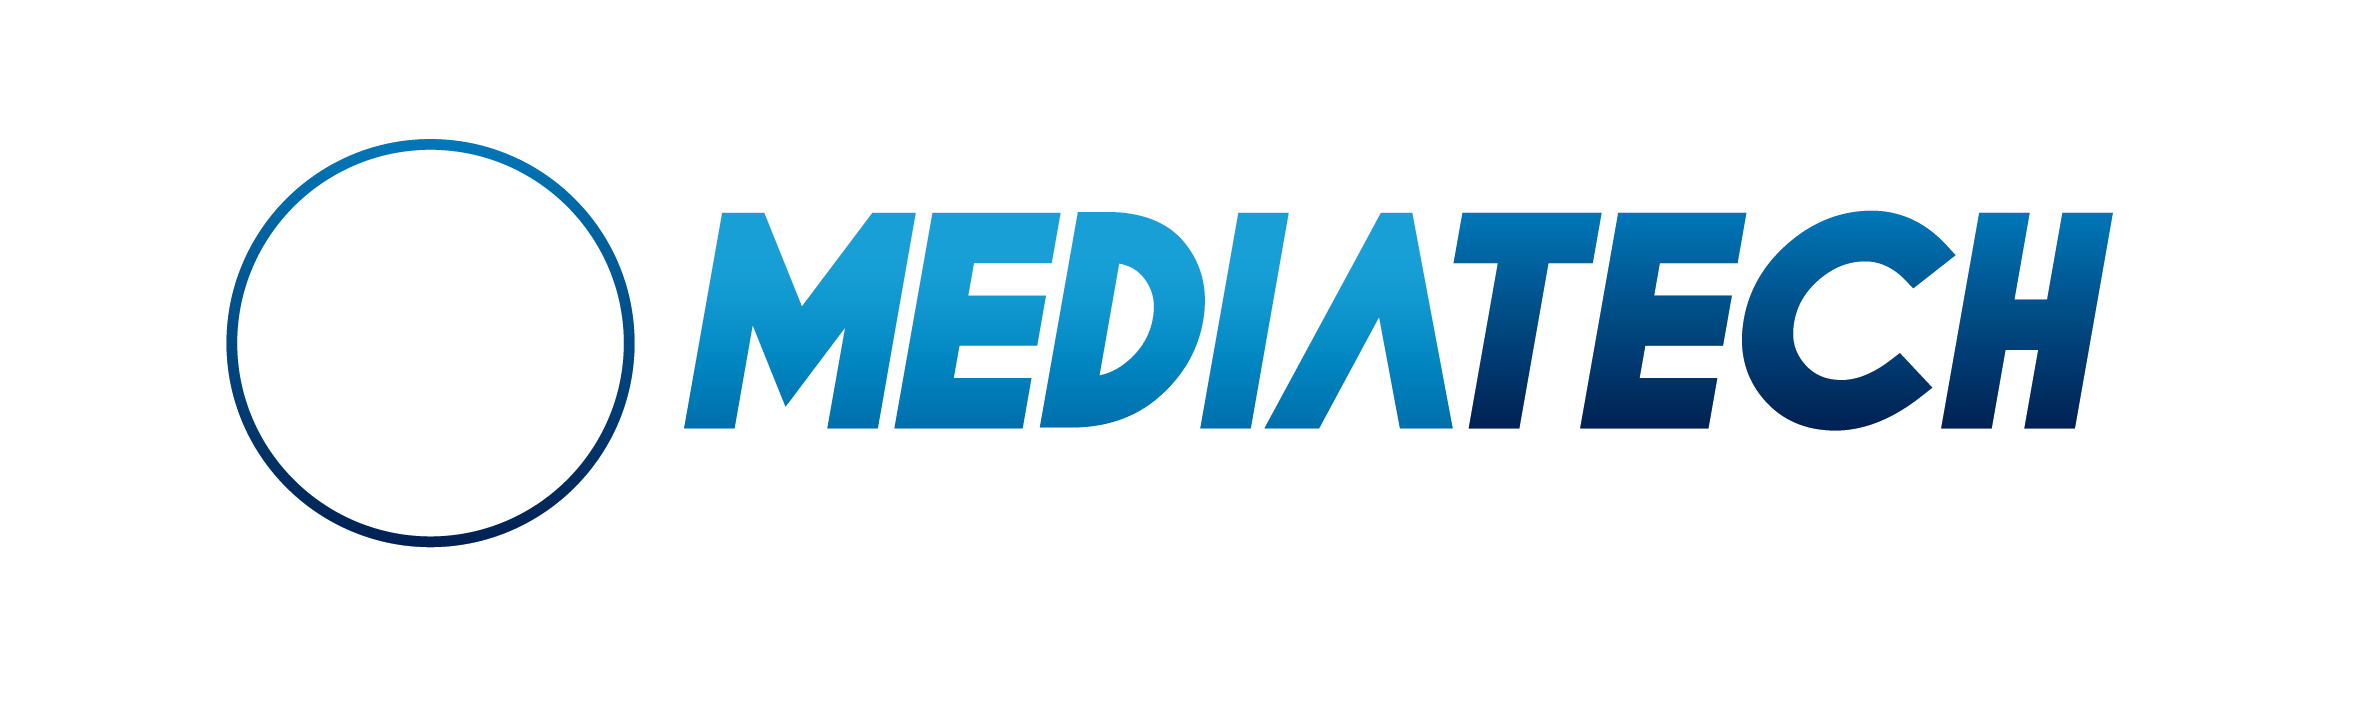 Mediatech Group Srl